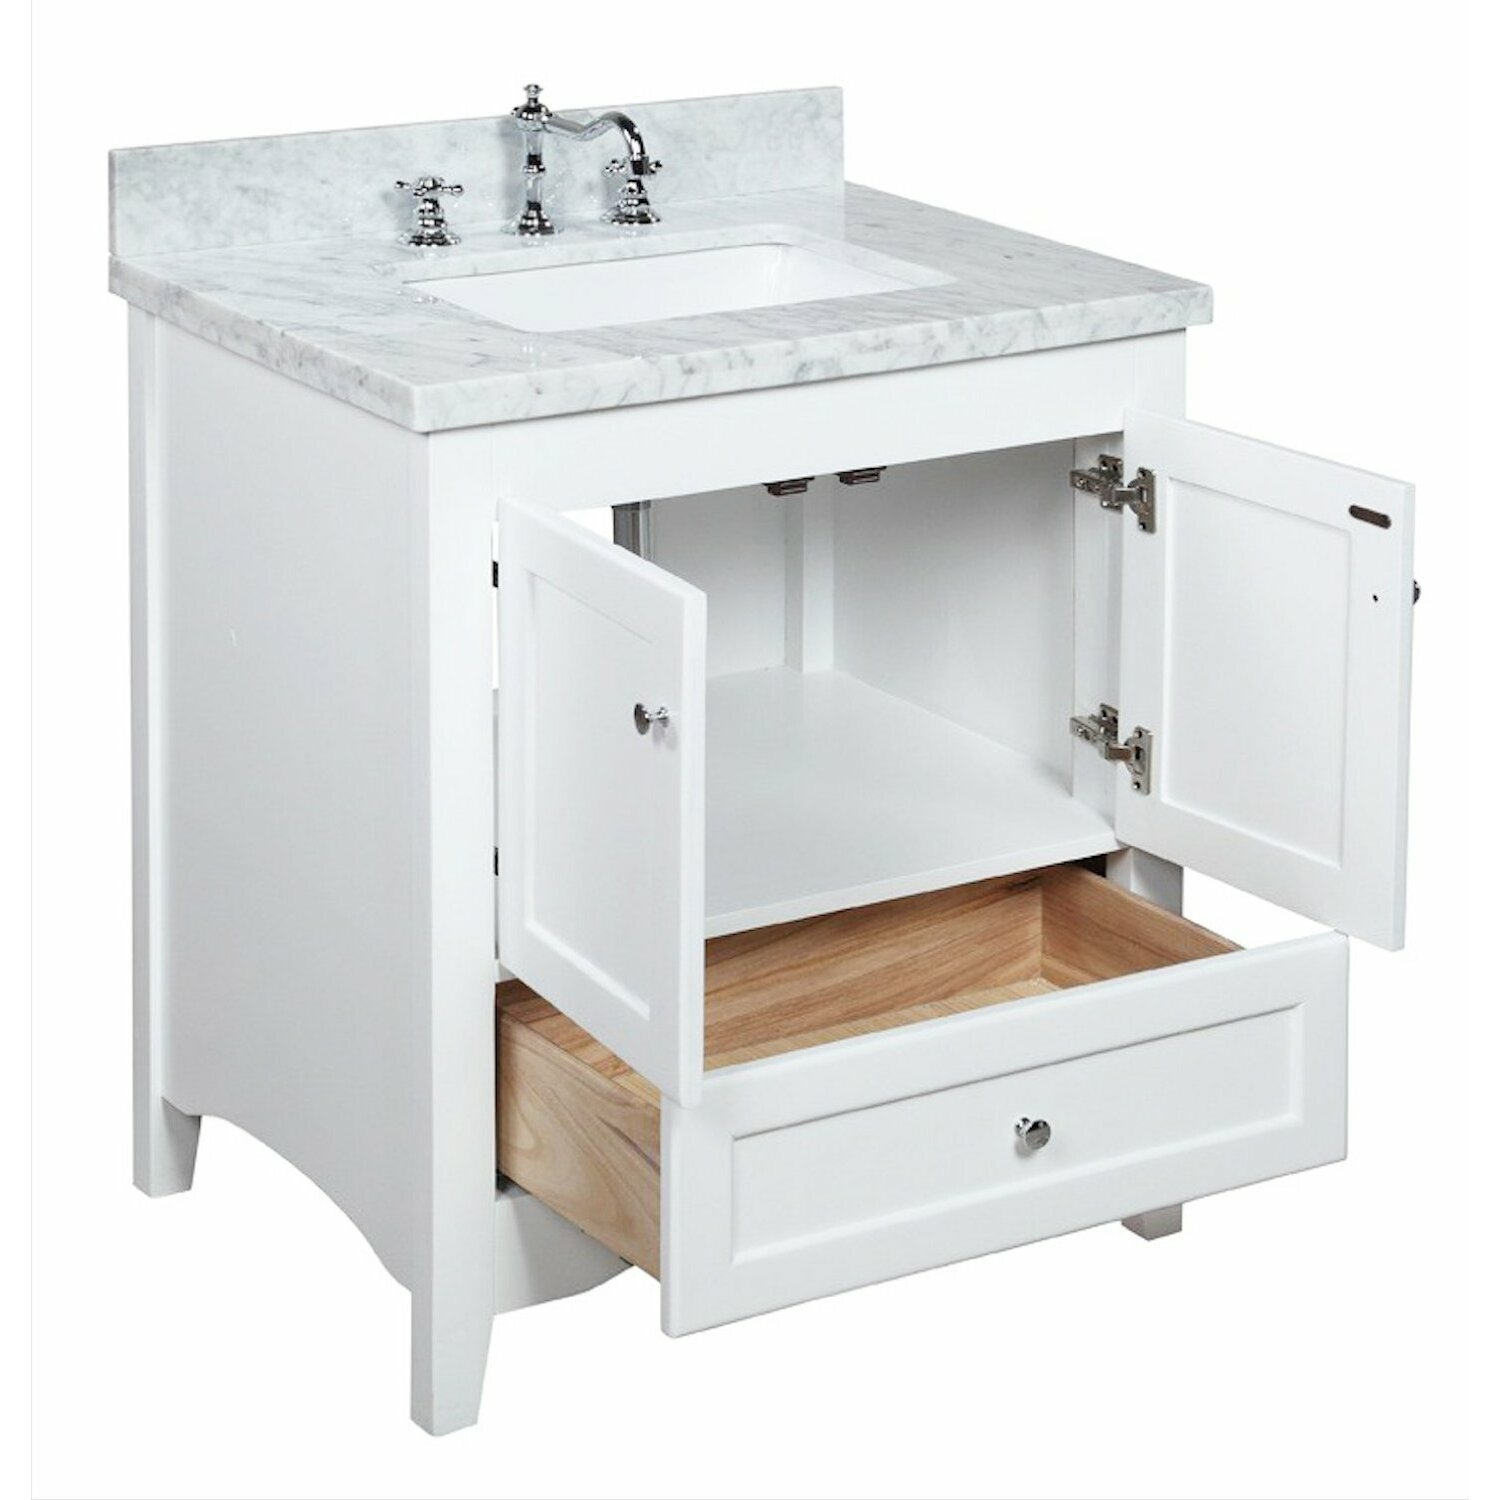 Kbc abbey 30 single bathroom vanity set reviews wayfair for Bathroom 30 inch vanity